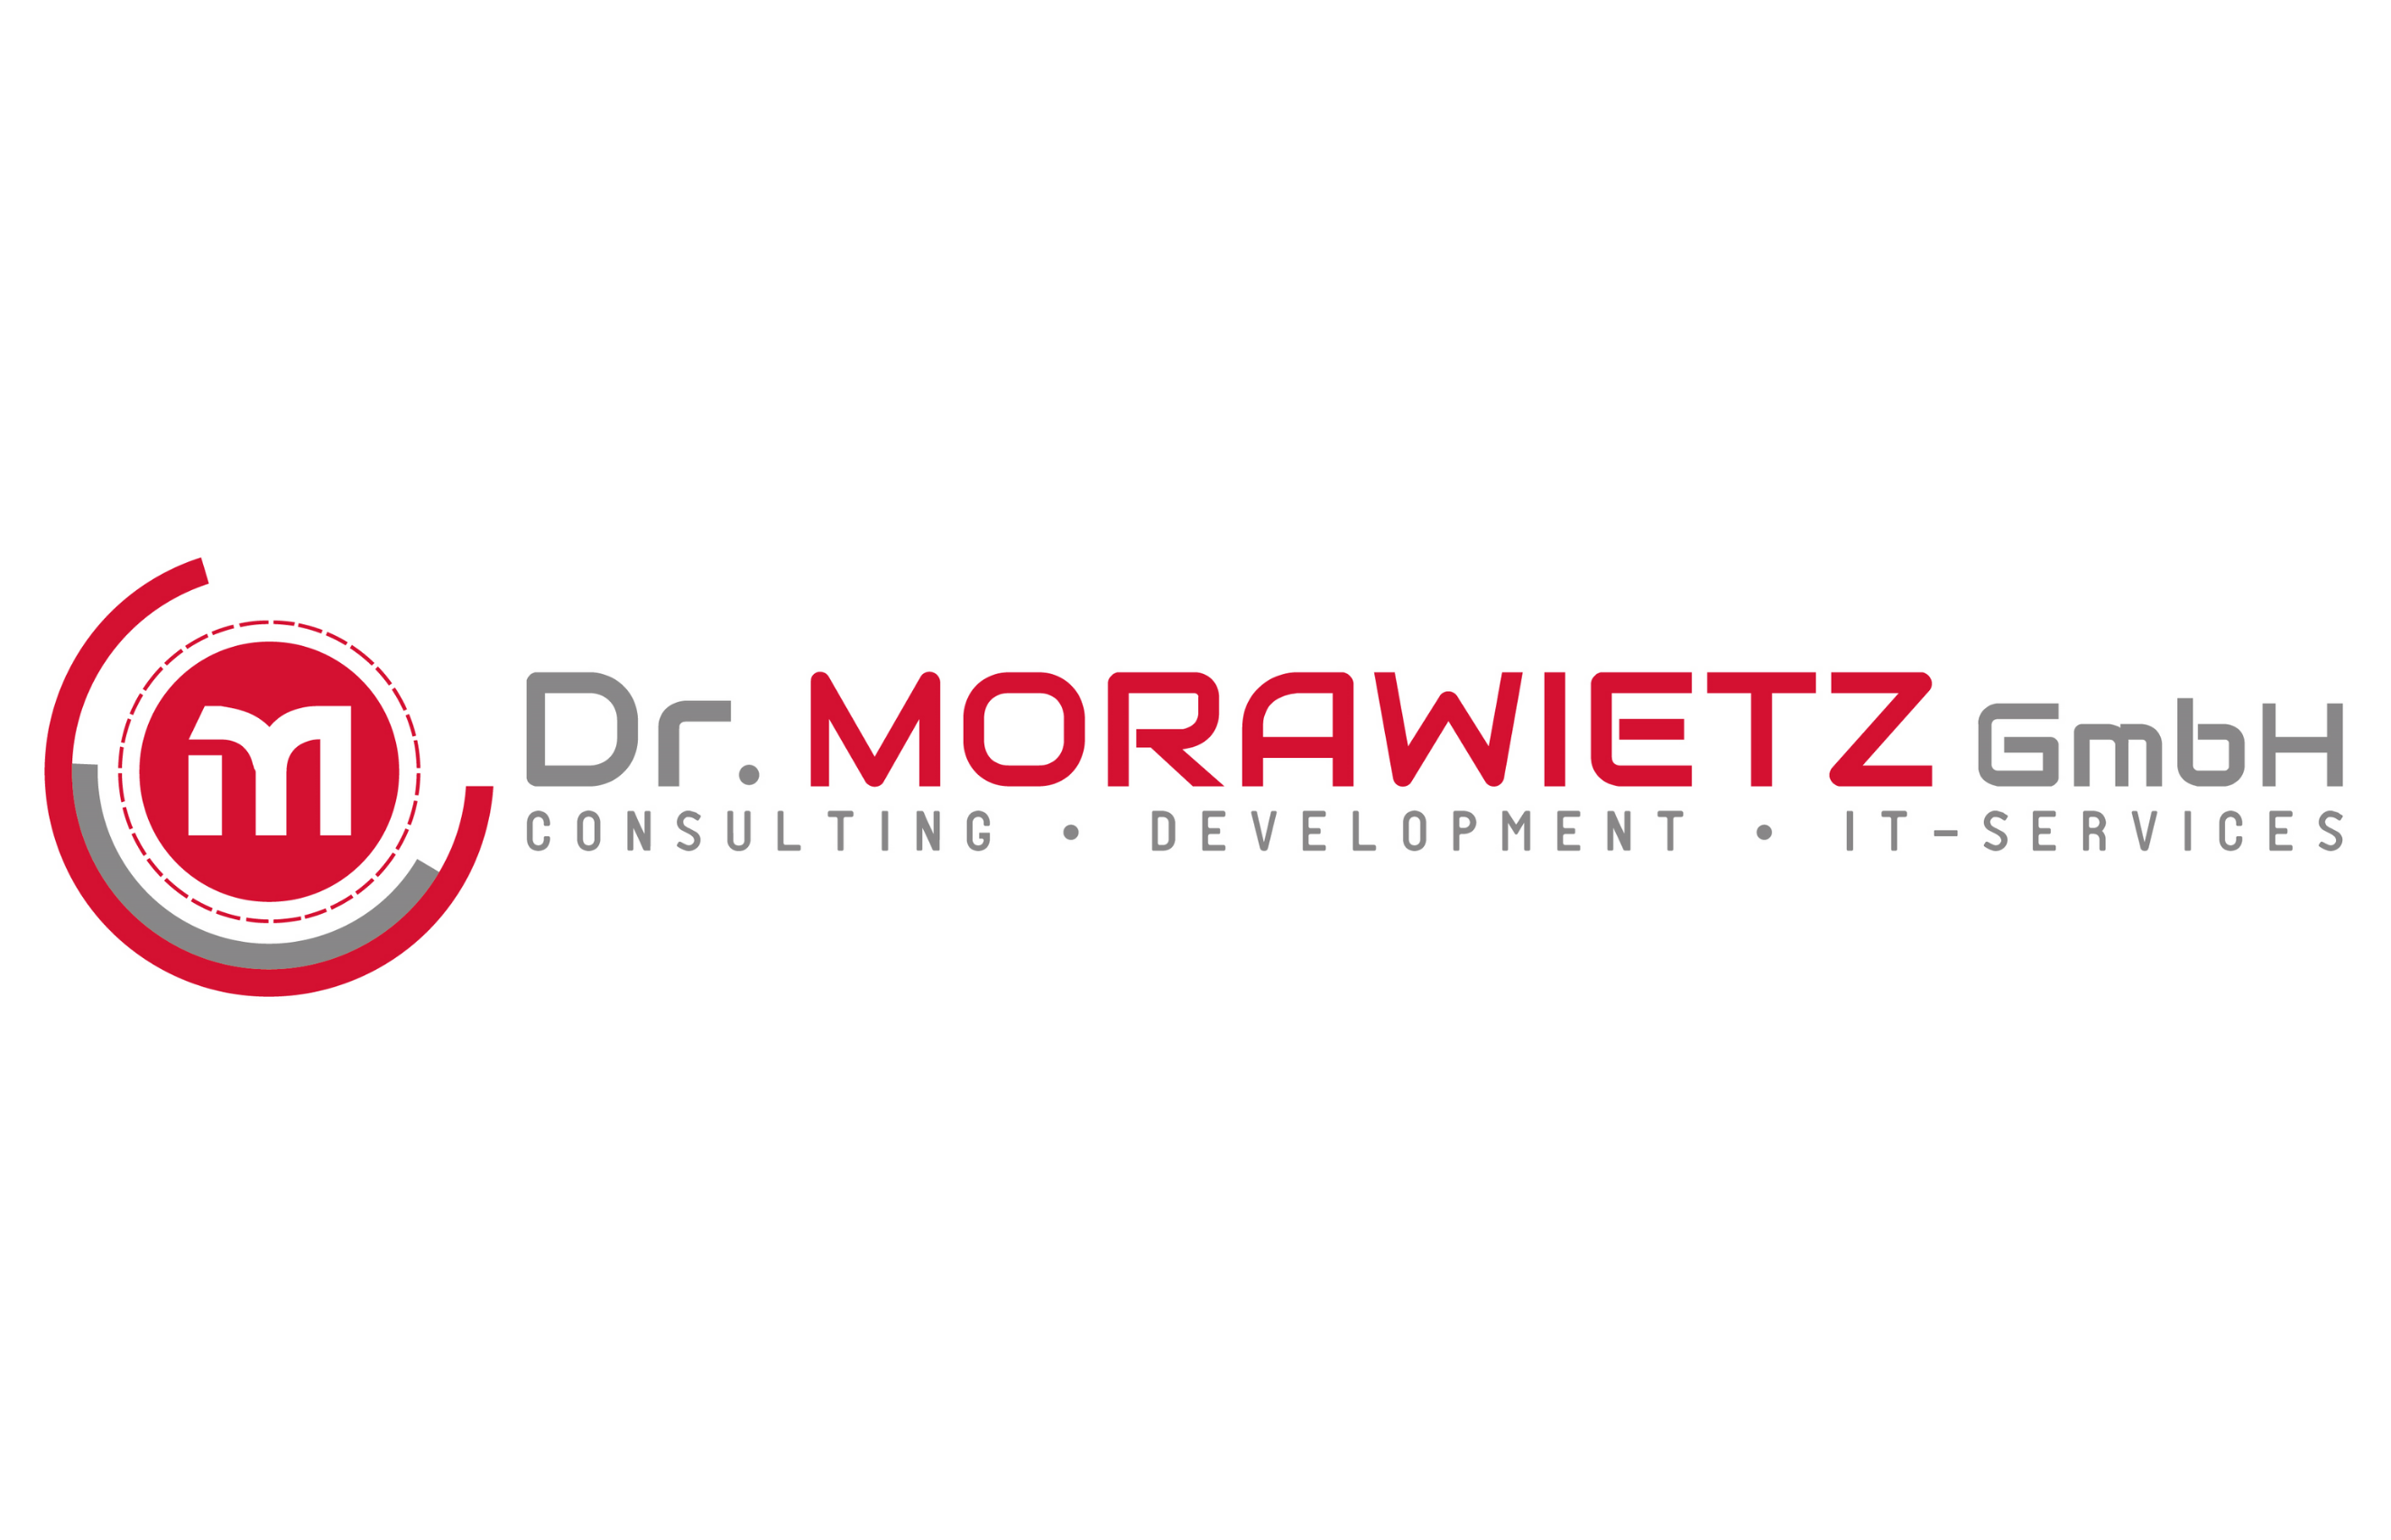 DR. MORAWIETZ OFFICE SOFTWARE & SYSTEMHAUS GMBH